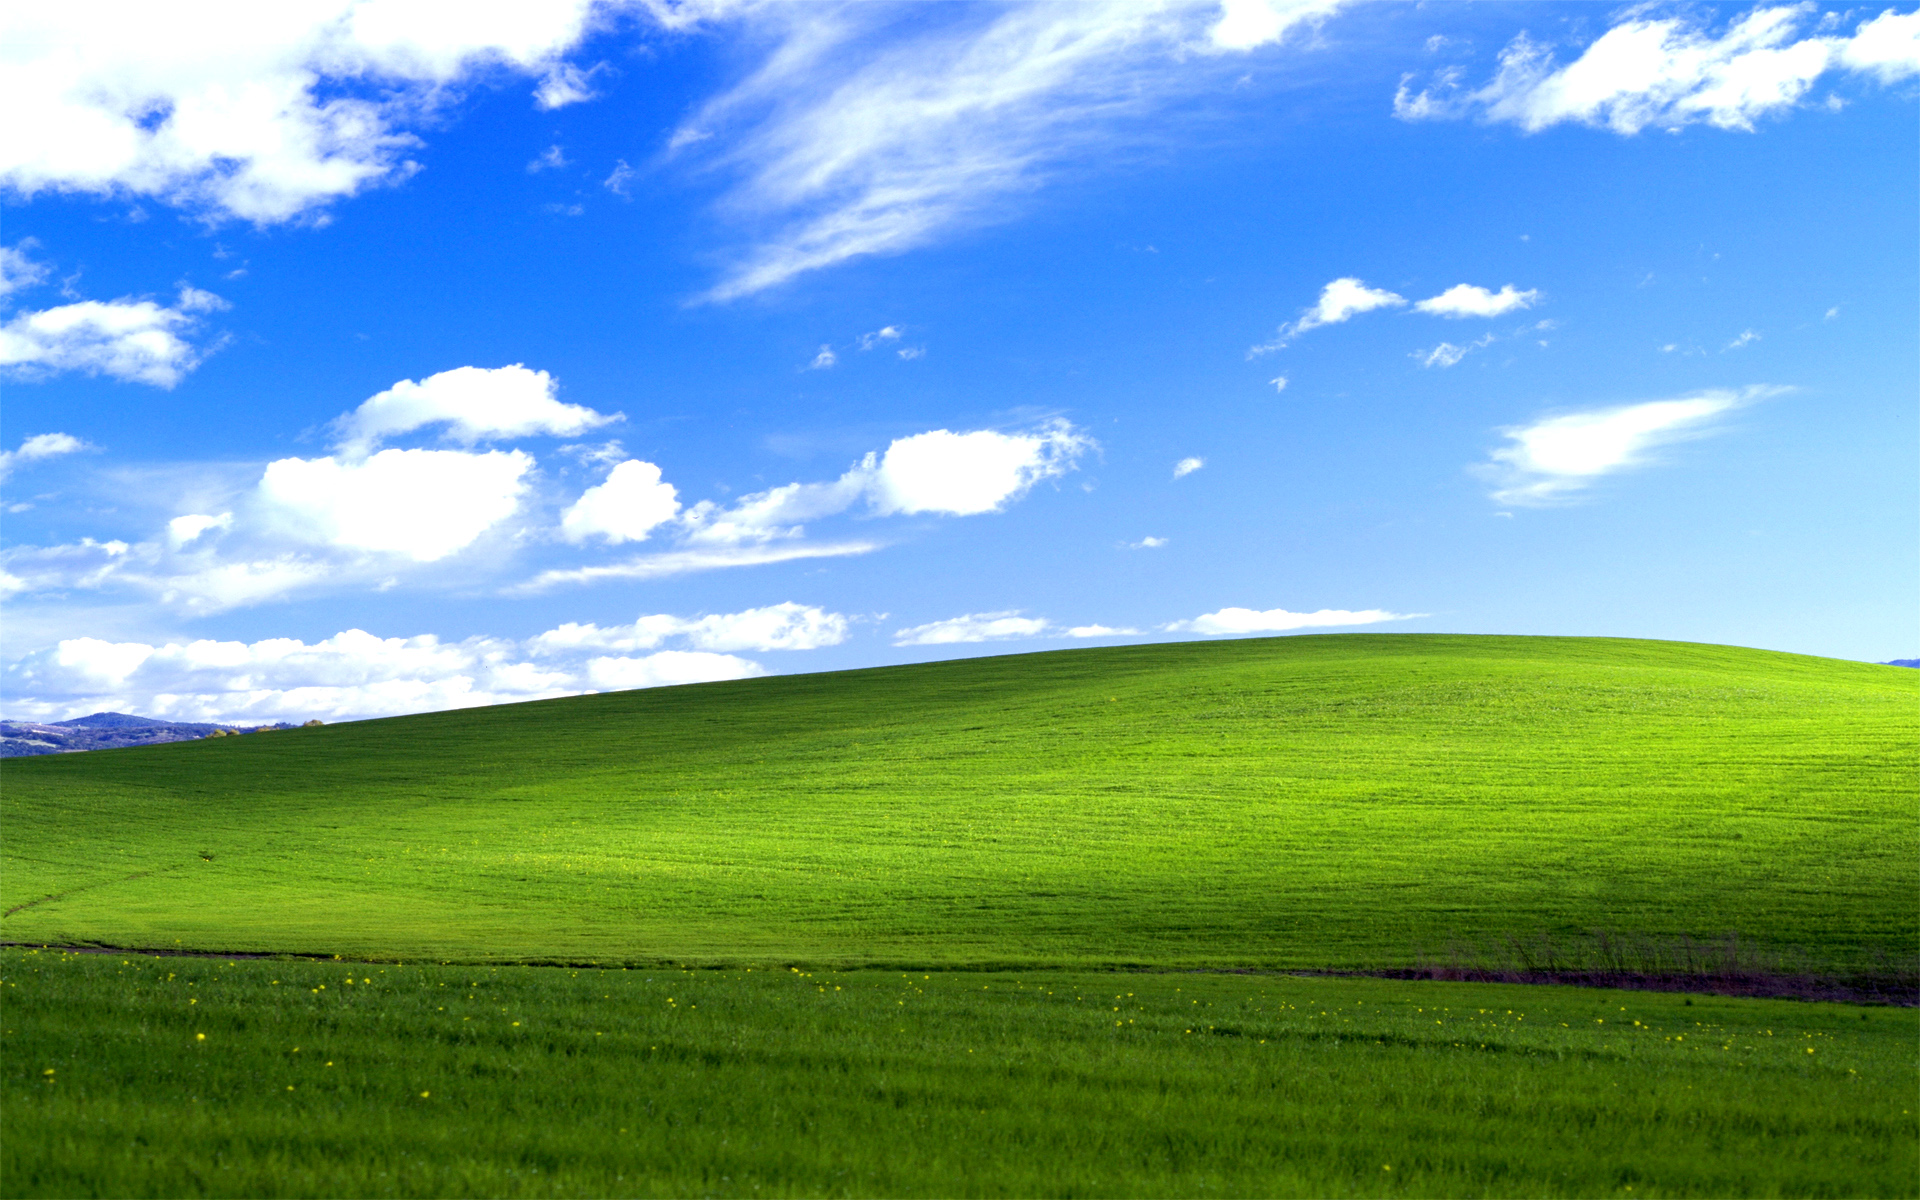 Windows Grass Wallpaper